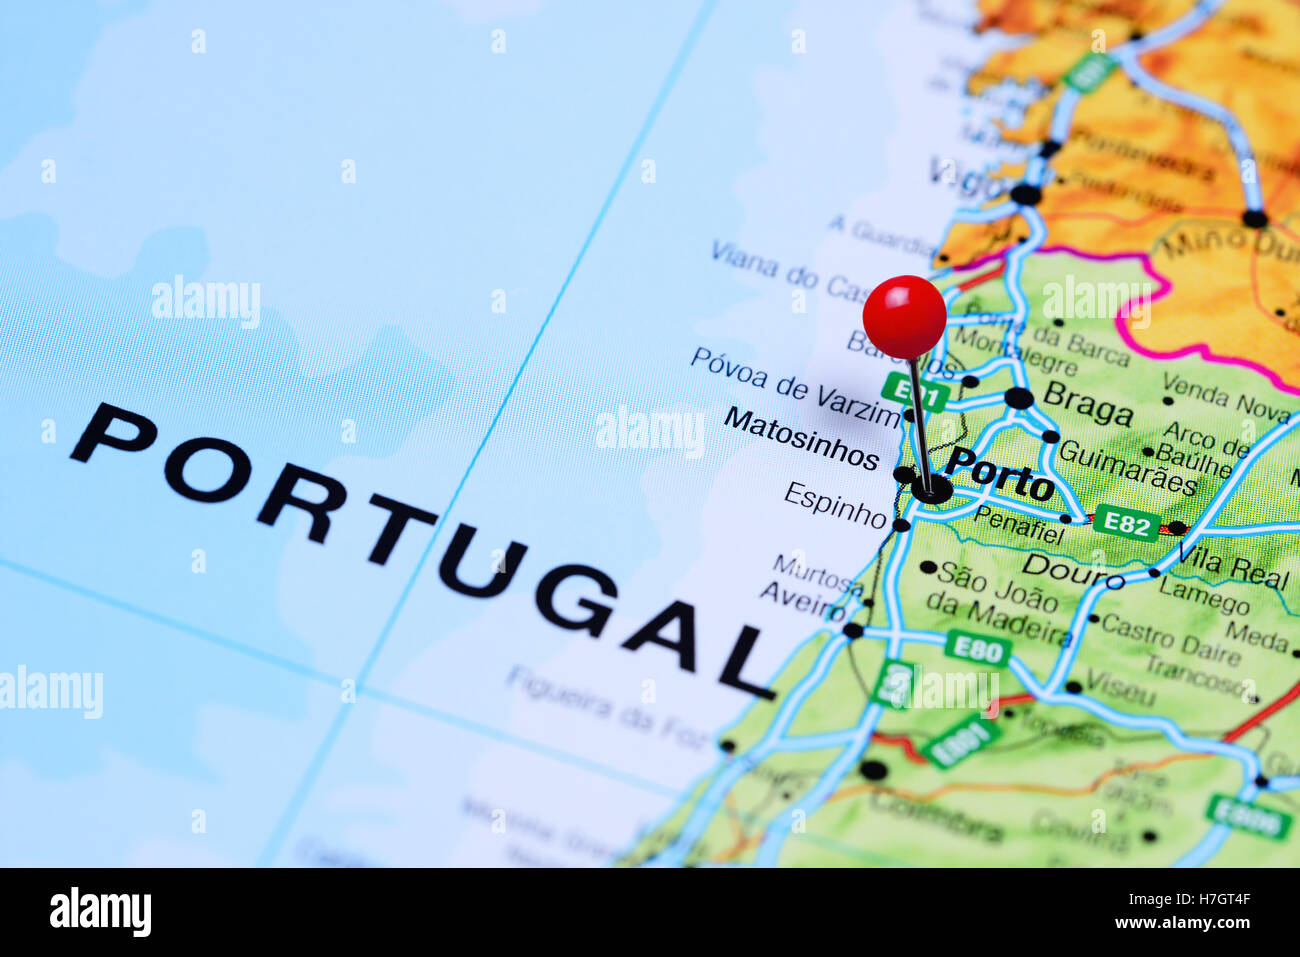 Porto Map Stock Photos Porto Map Stock Images Alamy